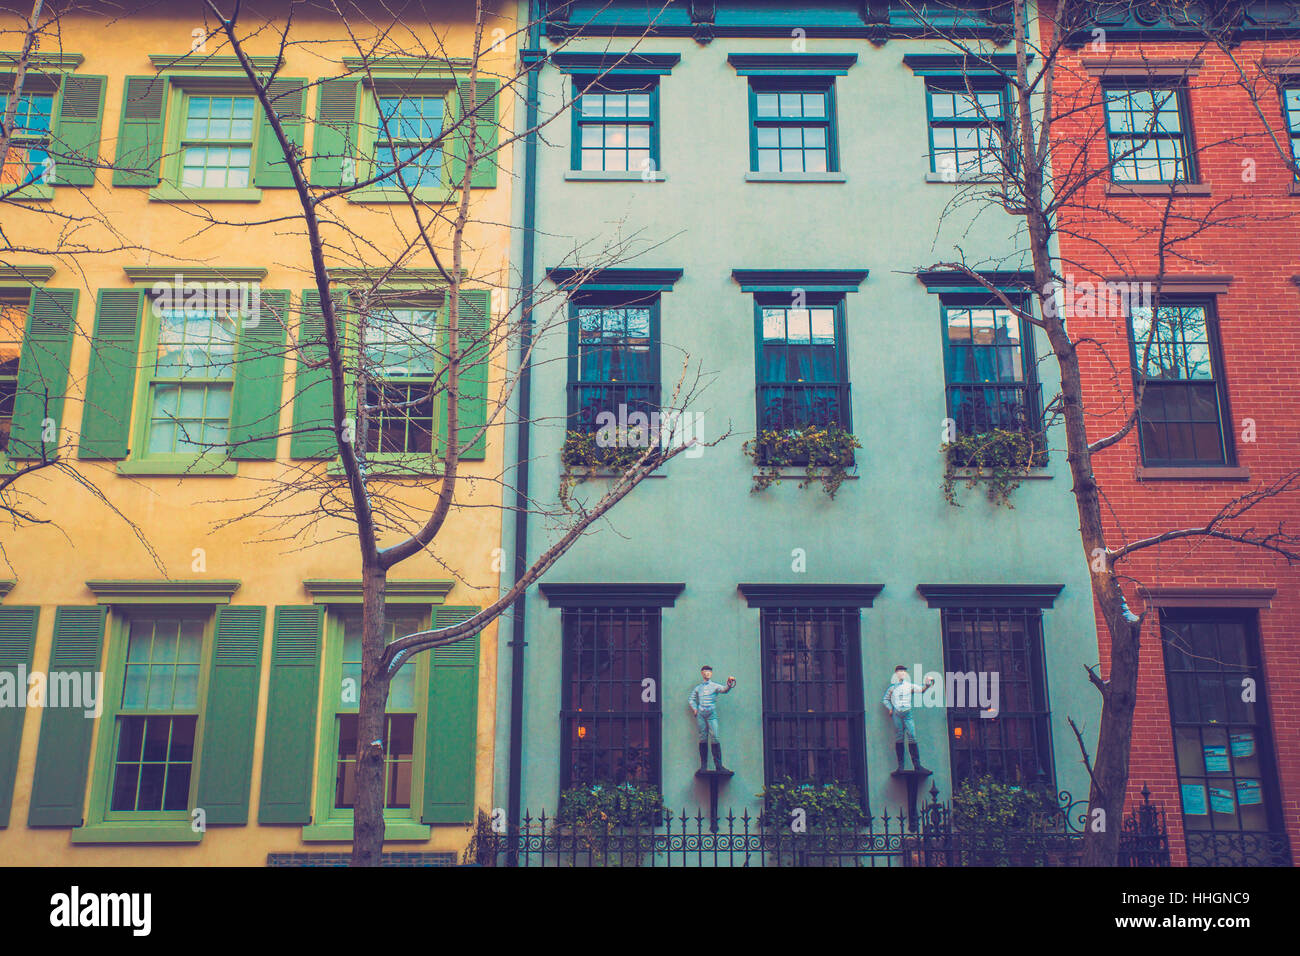 brick apartment new york stockfotos brick apartment new york bilder alamy. Black Bedroom Furniture Sets. Home Design Ideas